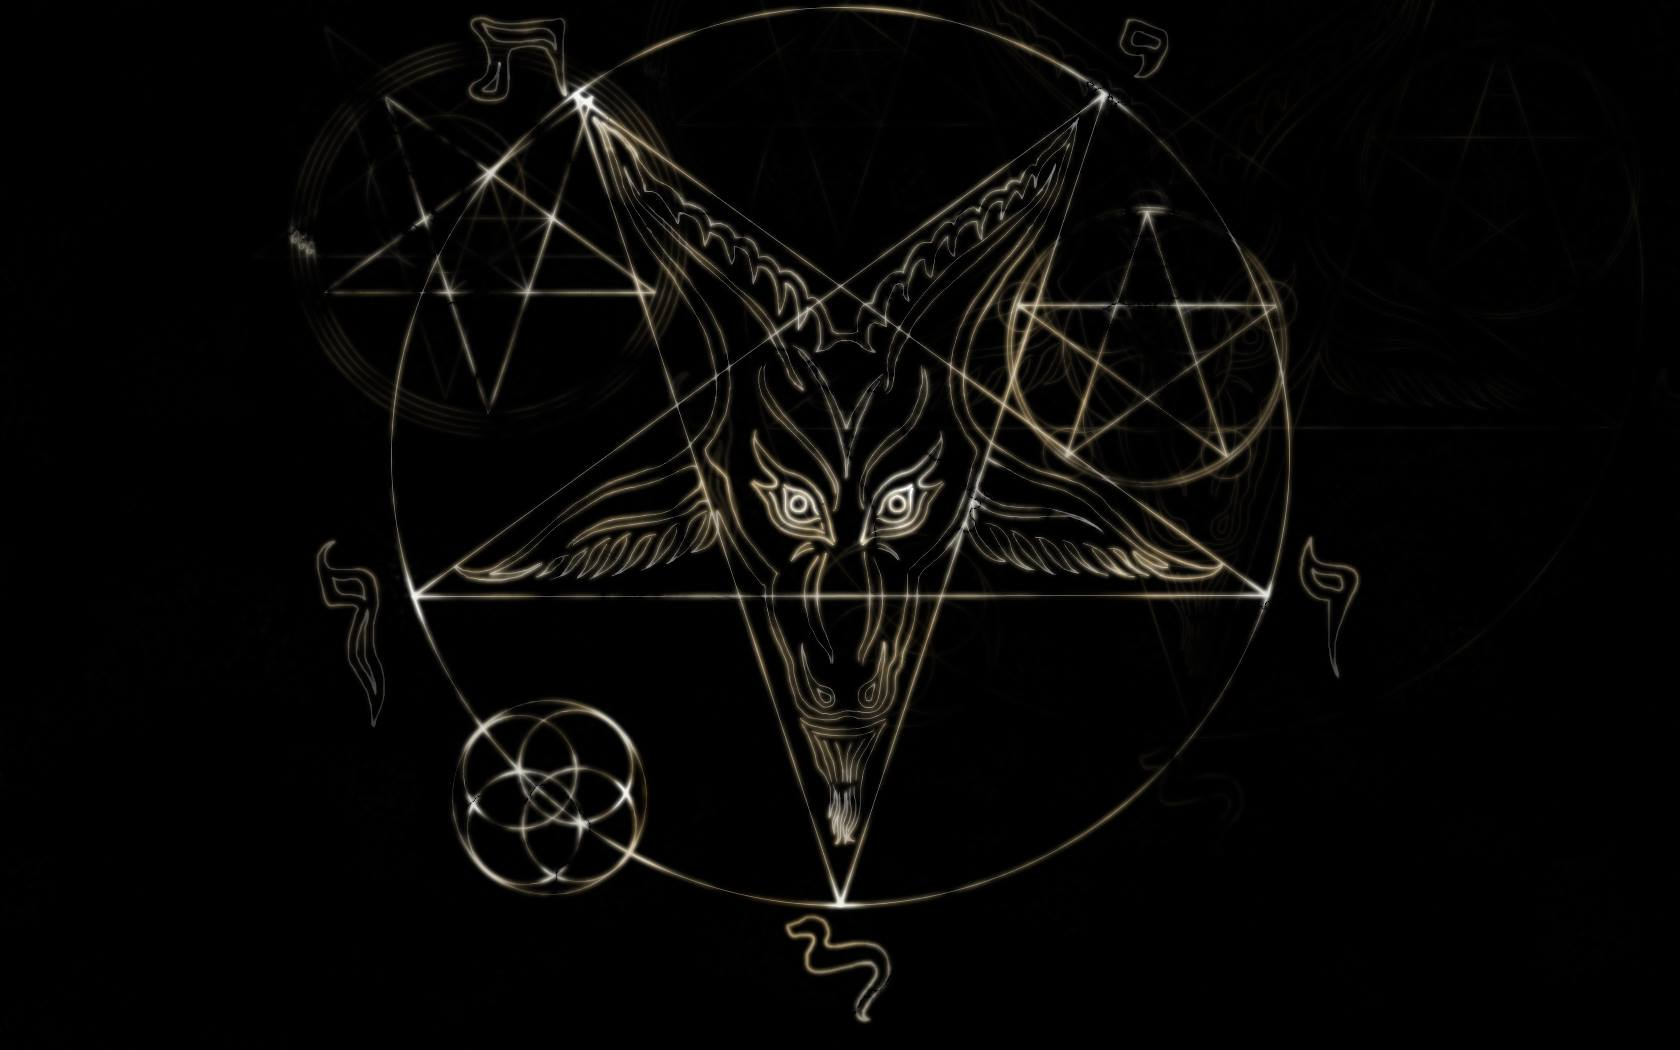 Satan wallpapers wallpapersafari 1680x1050 satanic symbols wallpaper do i know that satan really biocorpaavc Choice Image